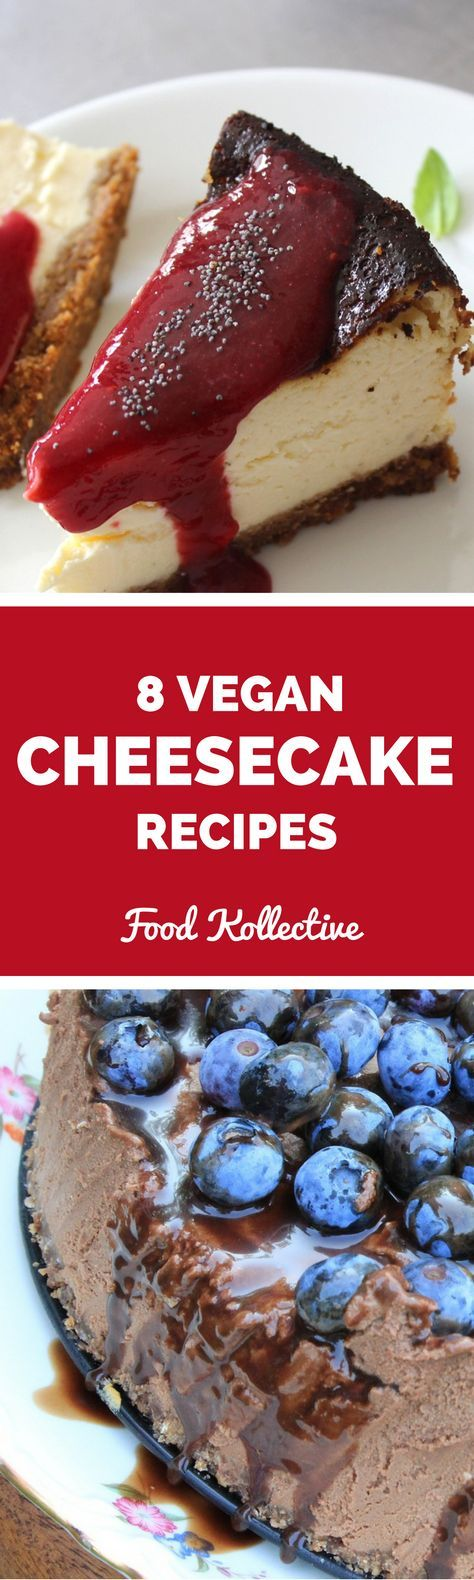 I was researching vegan gluten free cheesecake recipes and these look to die for! There are recipes for strawberry cheesecake, Snickers cheesecake, pumpkin cheesecake, peanut butter cup cheesecake, and more. These gluten free cheesecake and vegan cheesecake recipes would be super fun for a party! Collected on http://FoodKollective.com